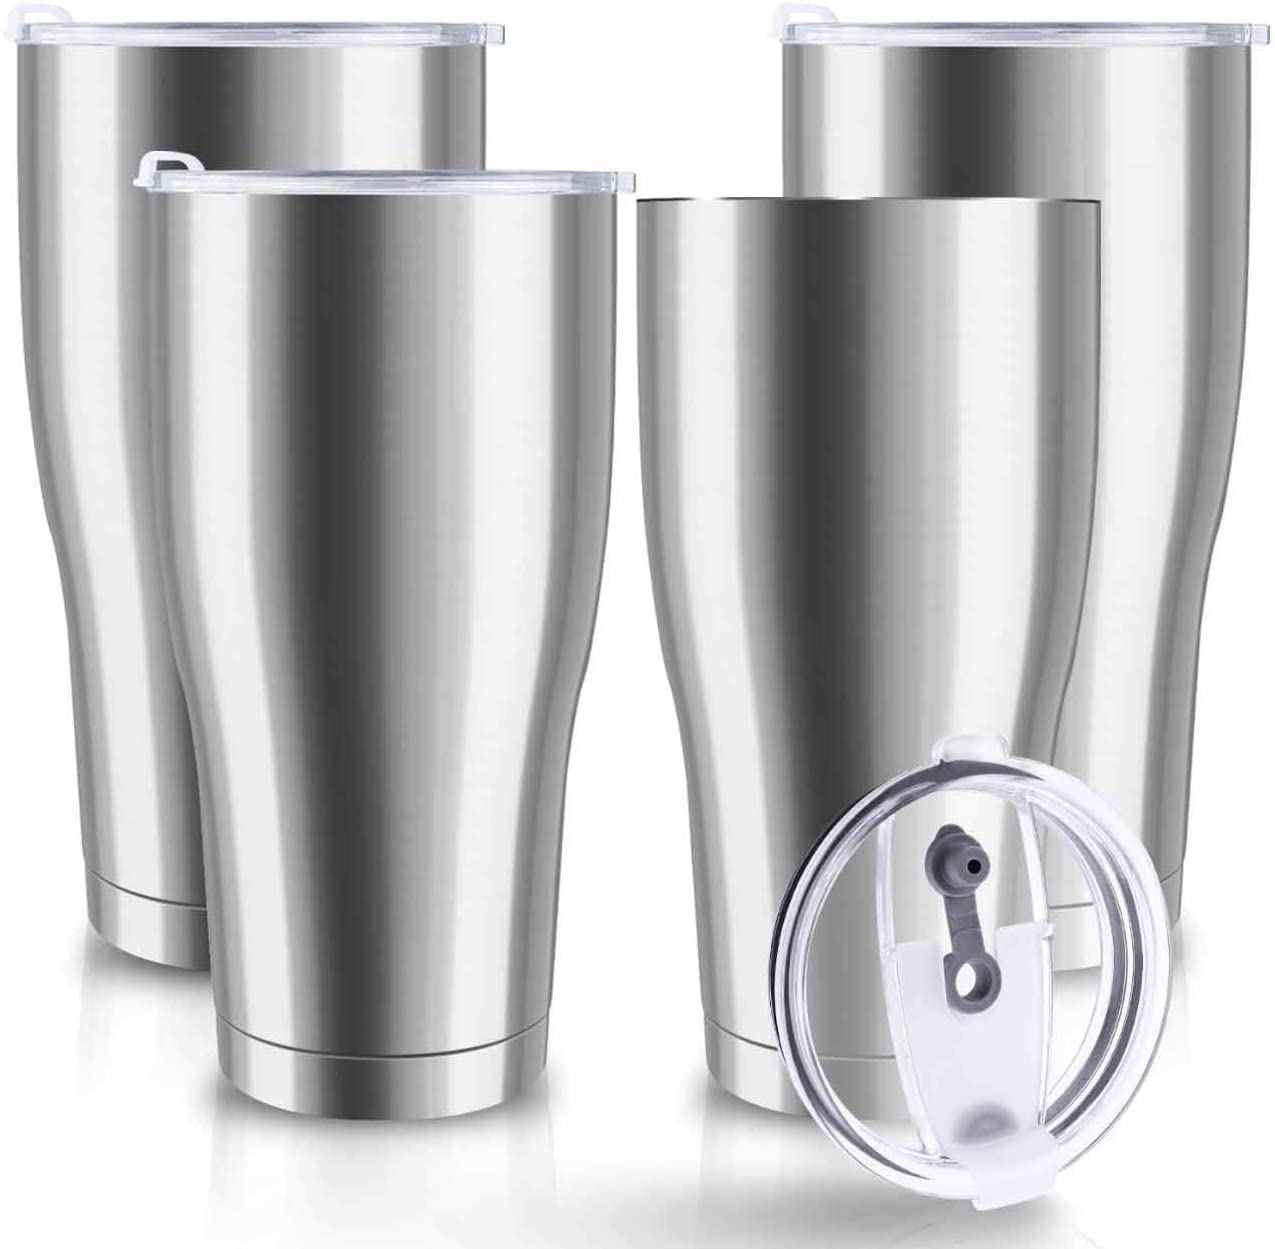 XccMe 30 oz Stainless Steel Tumbler with Lid,4 Pack Double Wall Vacuum Insulated Travel Mug, Durable Insulated Tumbler for Gift, Coffee, Tea, Beverages (Silver 4)